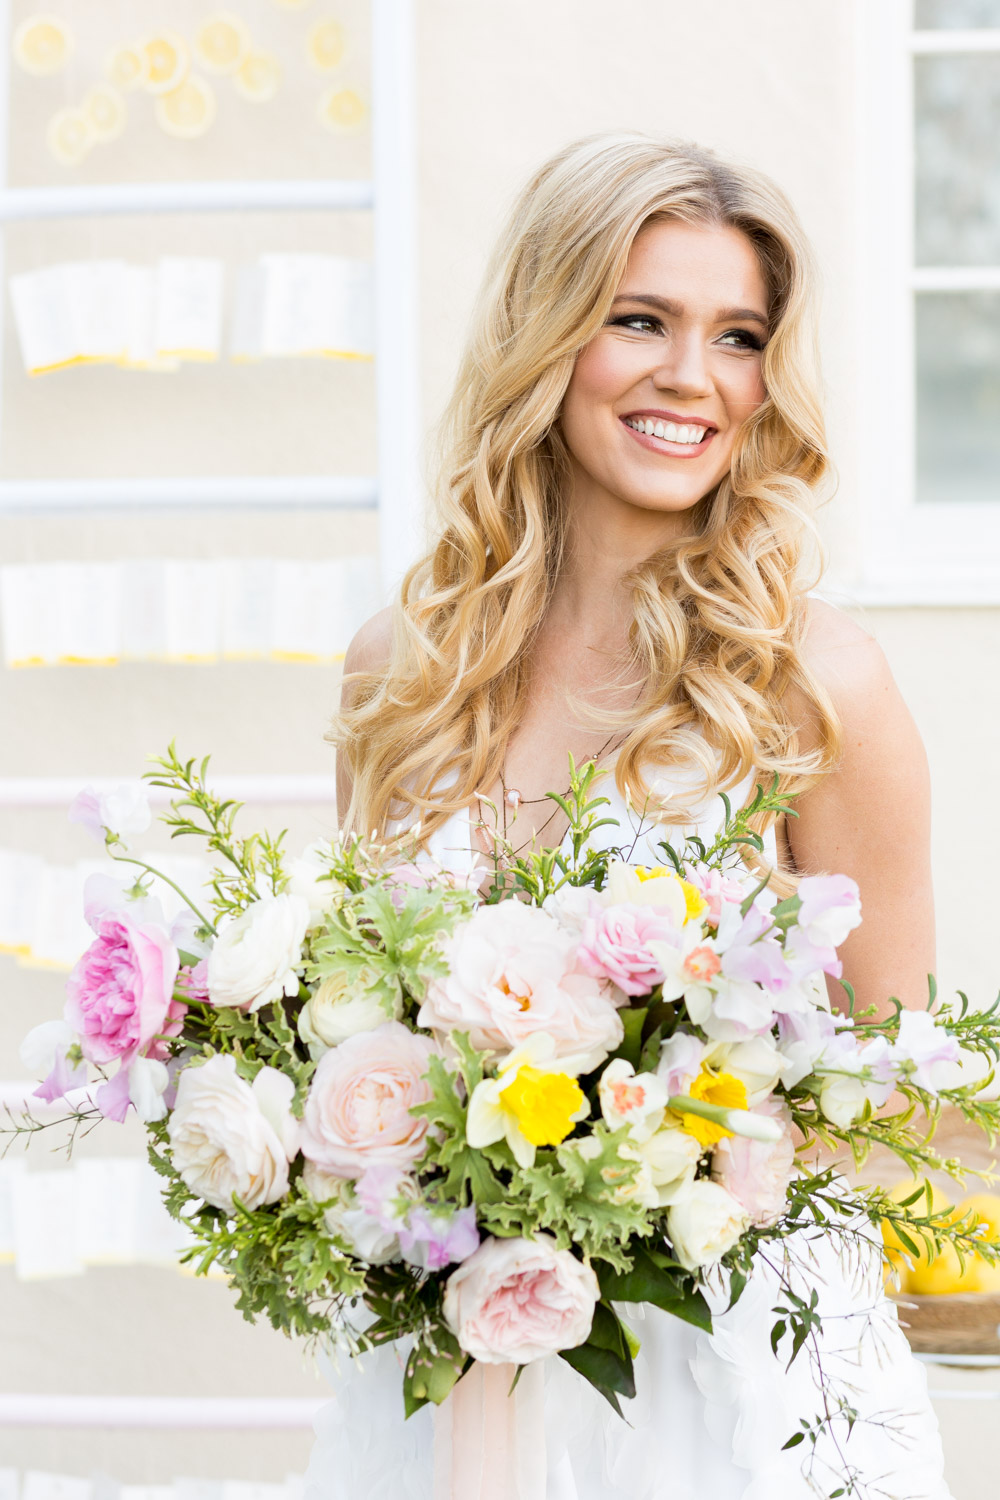 Inn at Rancho Santa Fe wedding bridal portrait of the bride and her large pink yellow and green feminine bouquet